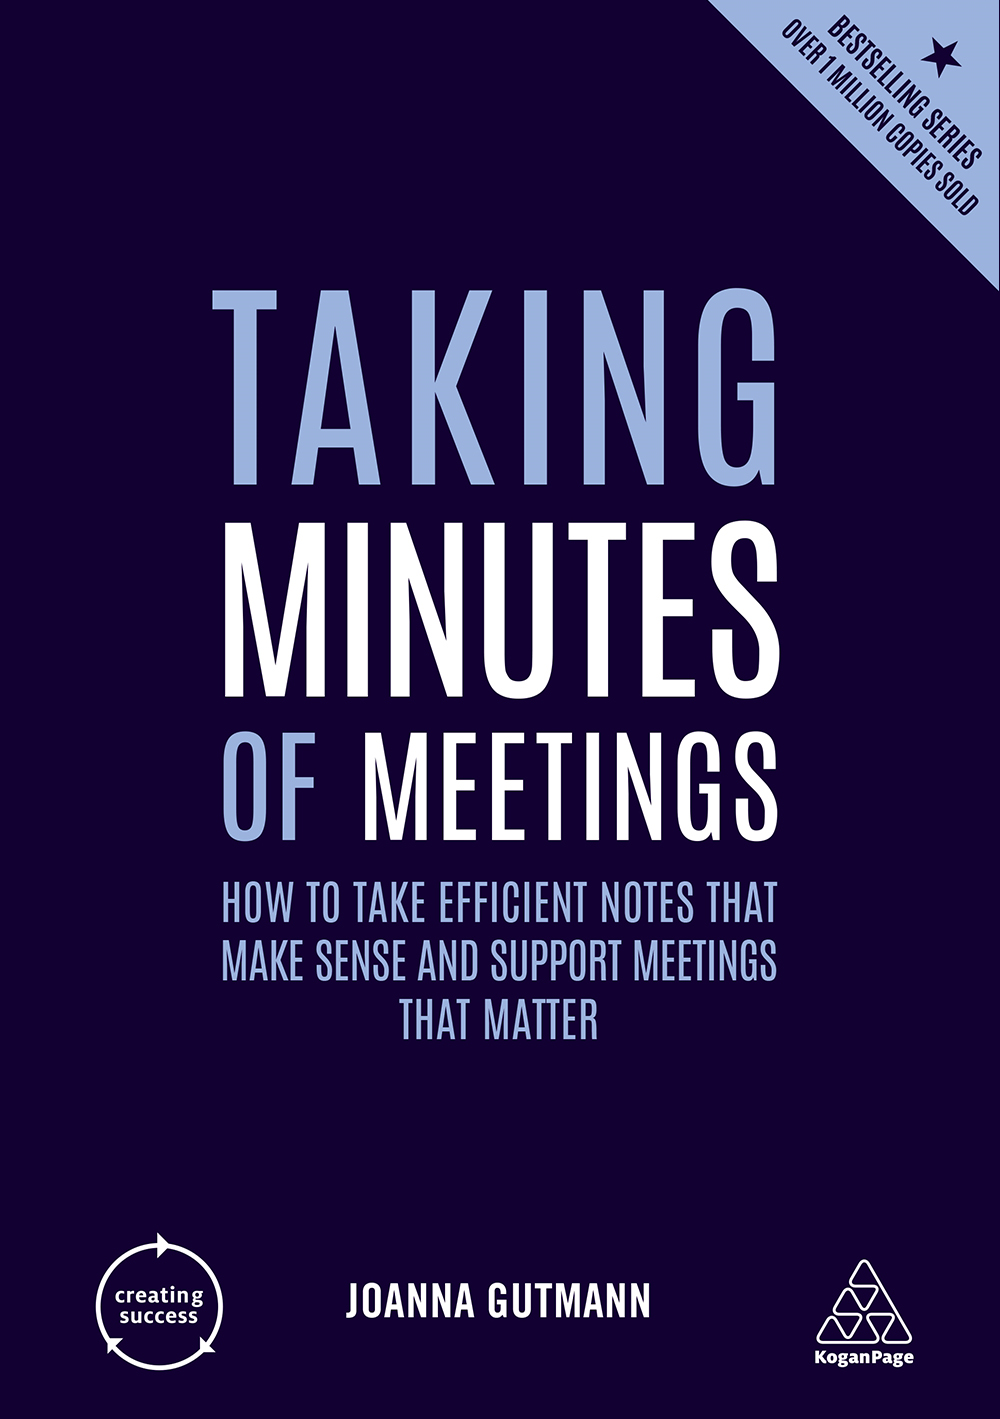 Taking Minutes of Meetings Book